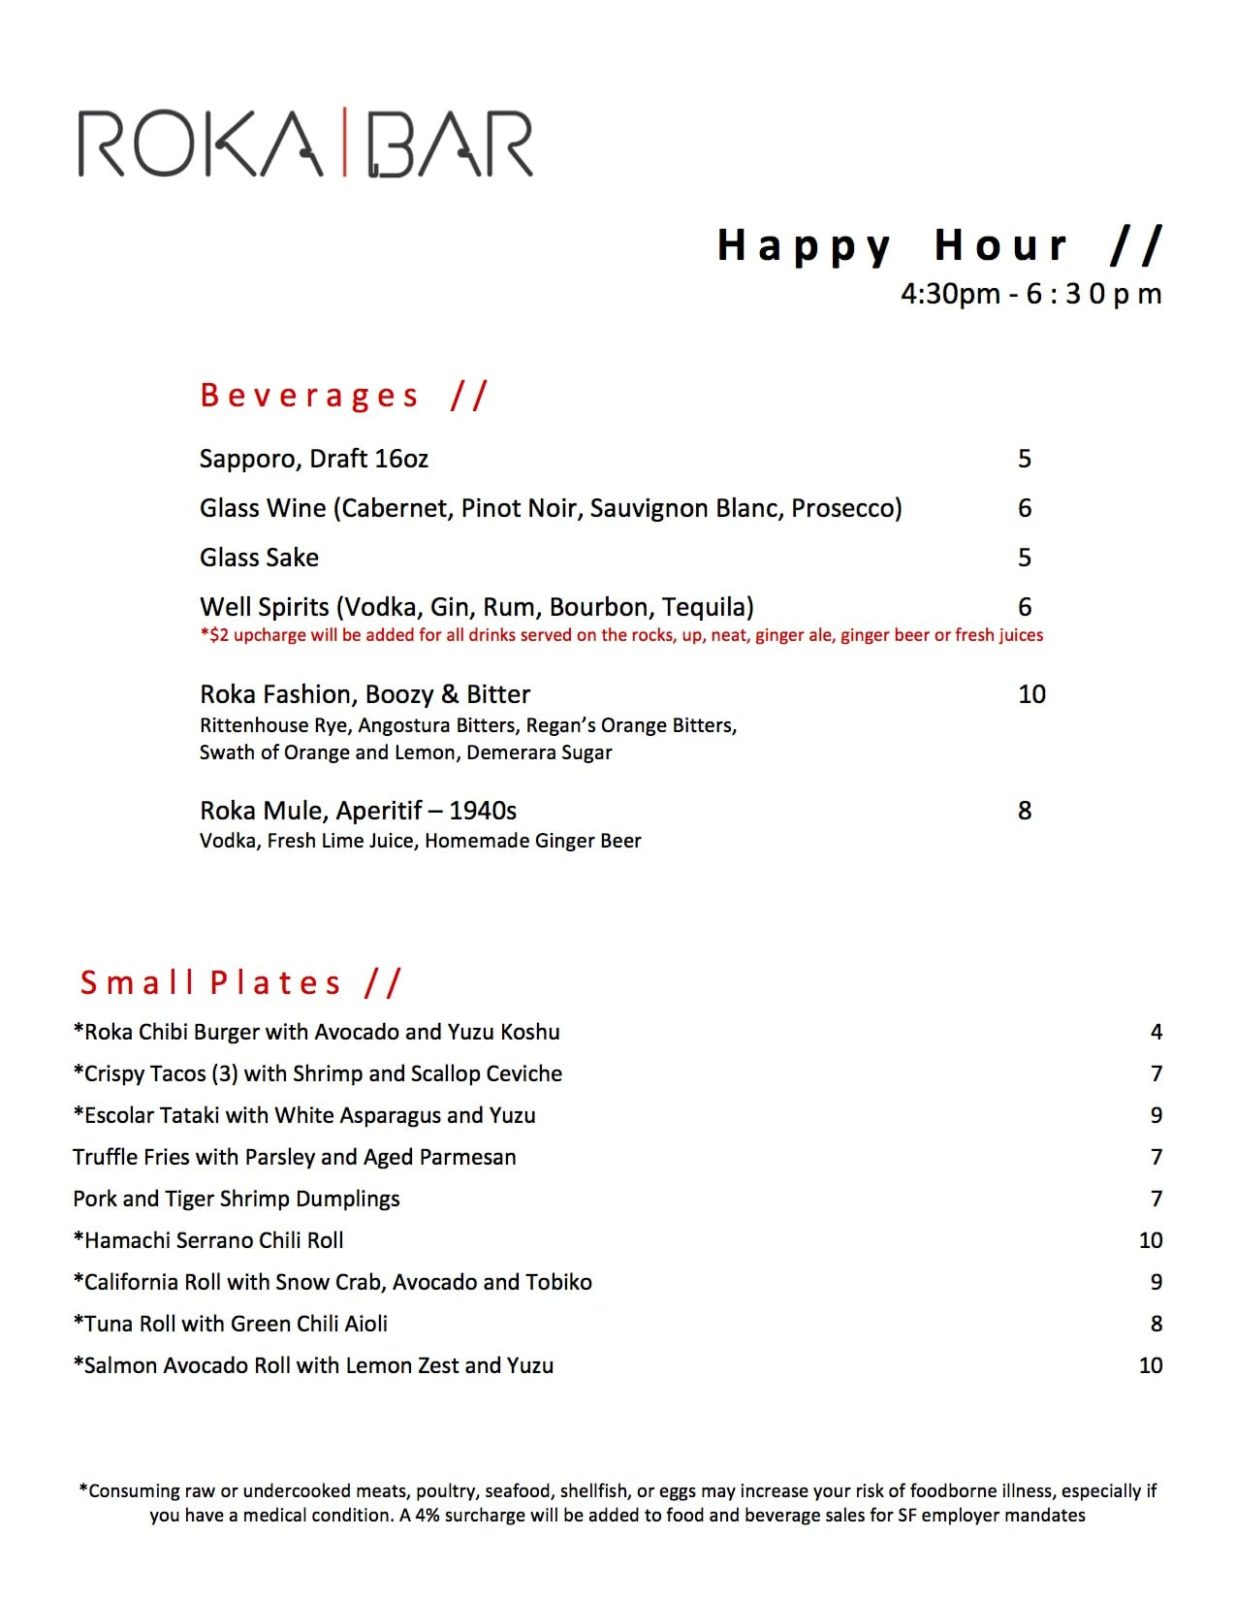 , SAN FRANCISCO HAPPY HOUR in ROKA BAR